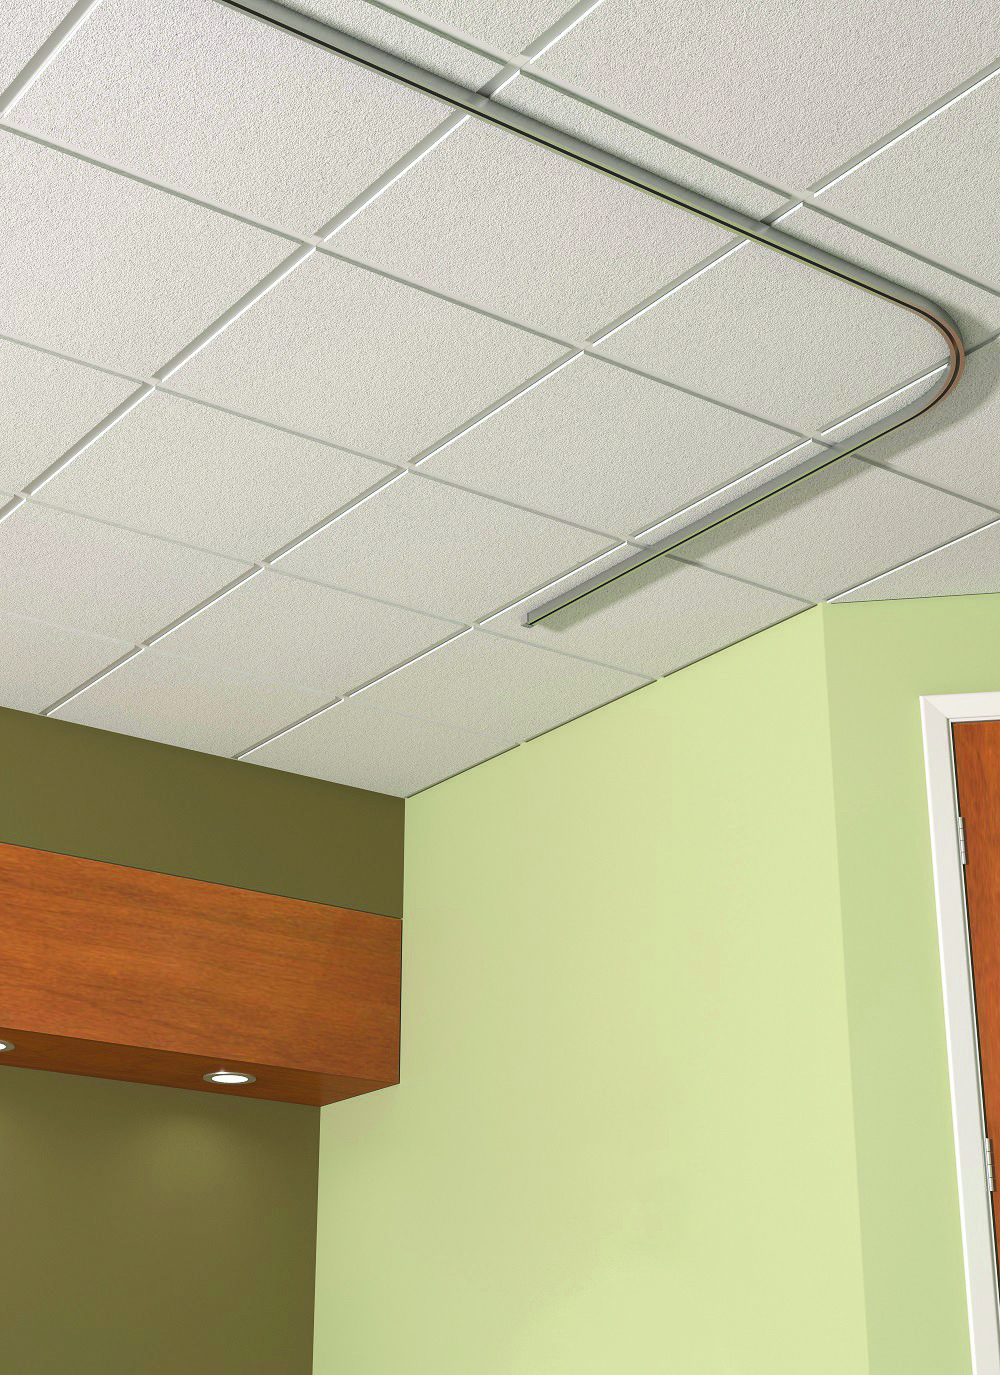 Cover all your bases with usg luna climaplus lay in ceiling tile a cover all your bases with usg luna climaplus lay in ceiling tile a perfect dailygadgetfo Gallery